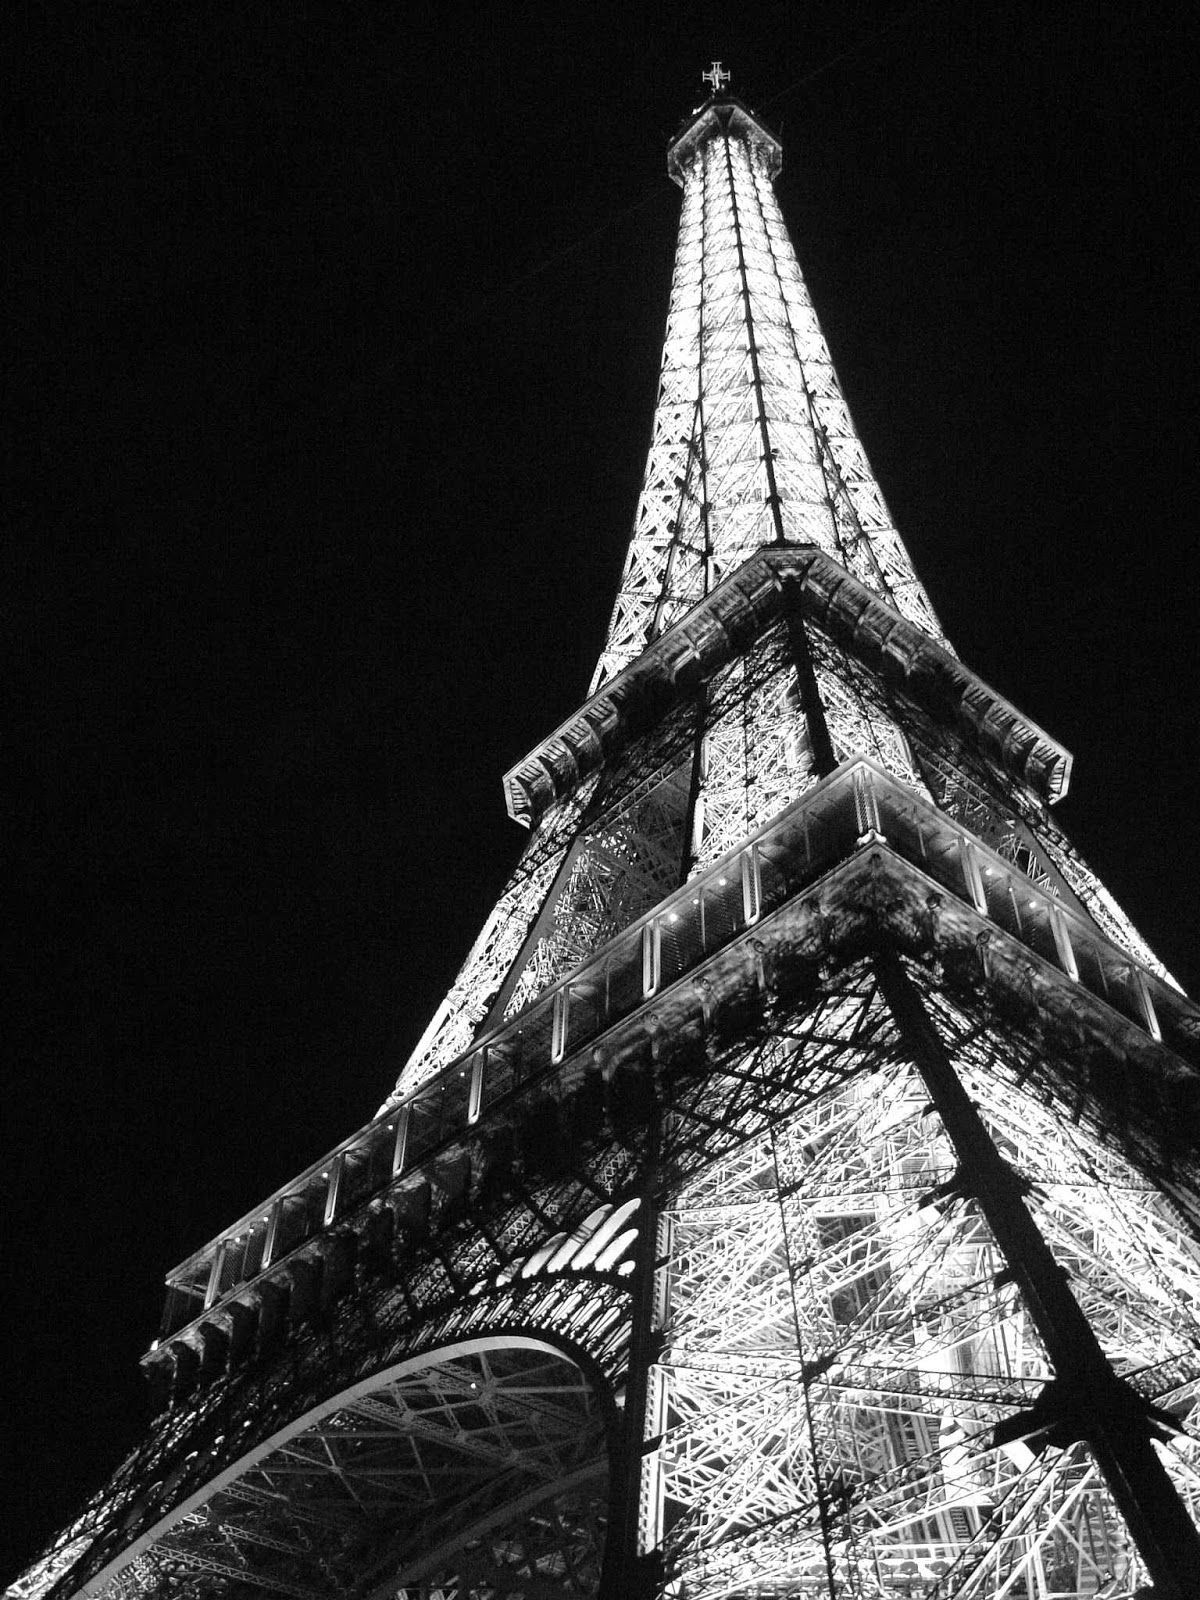 Eiffel Tower Paris at night Black and white Photo Paris